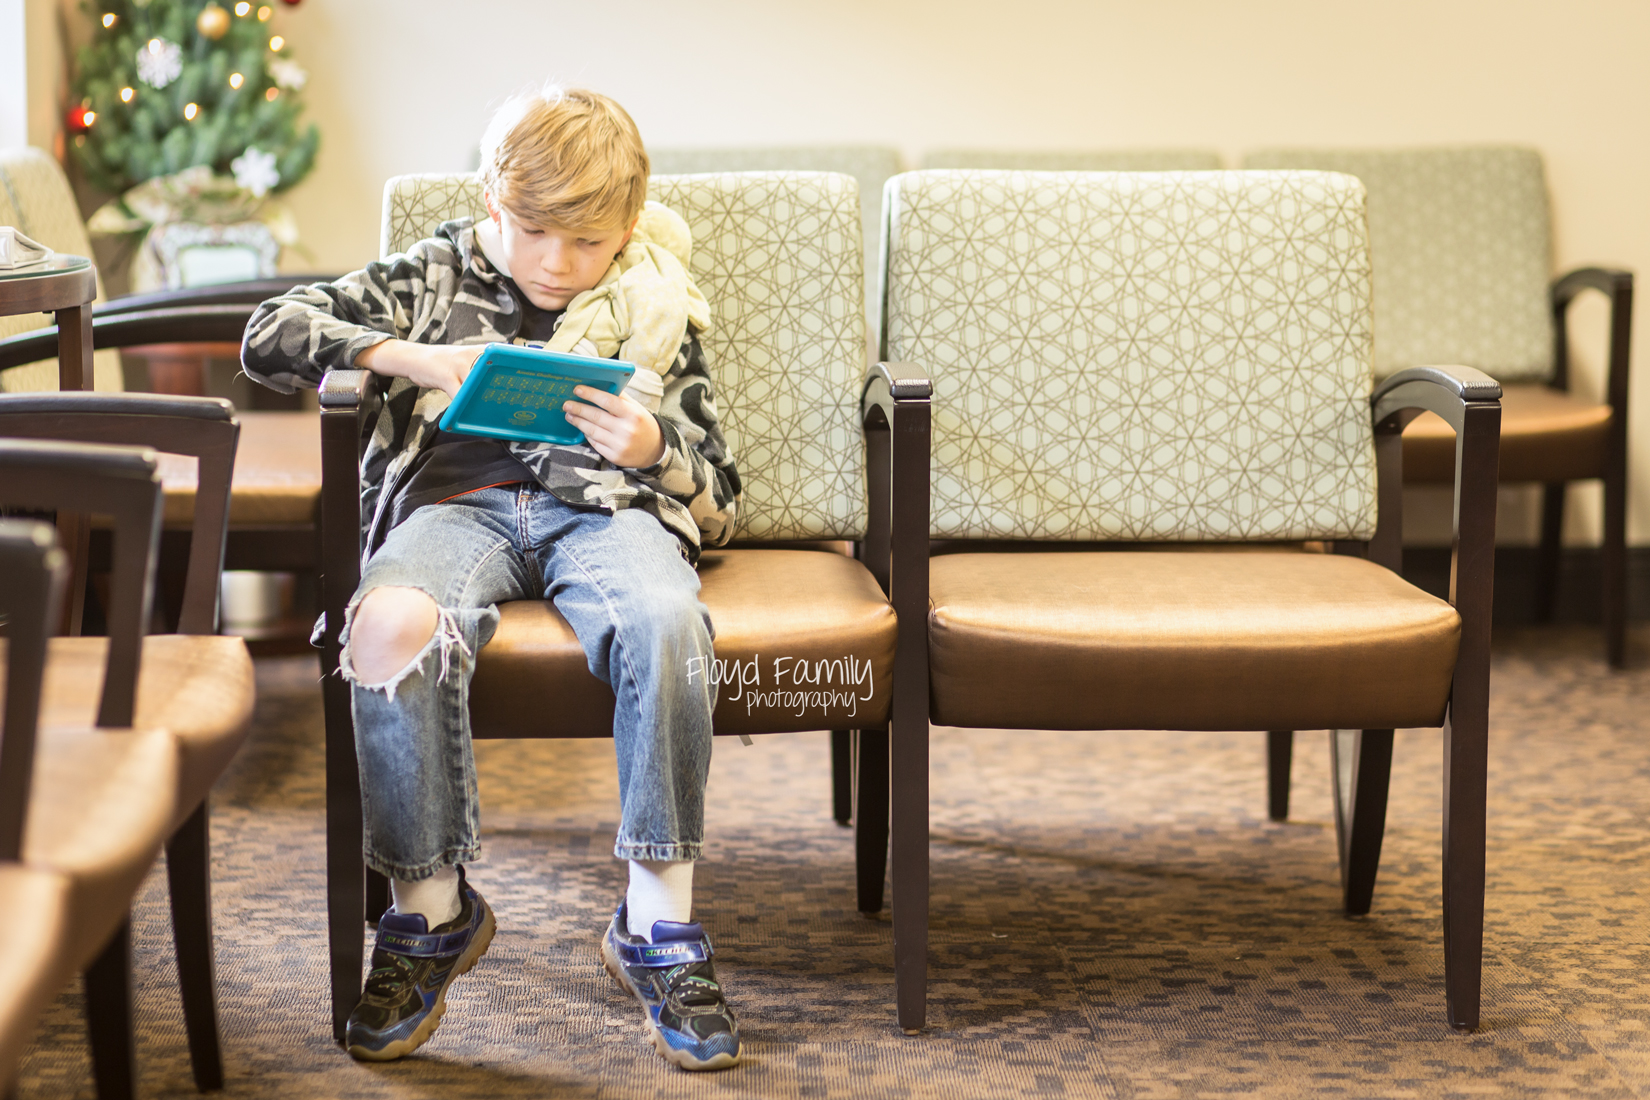 boy playing game in waiting room | Placerville Lifestyle Documentary Photos